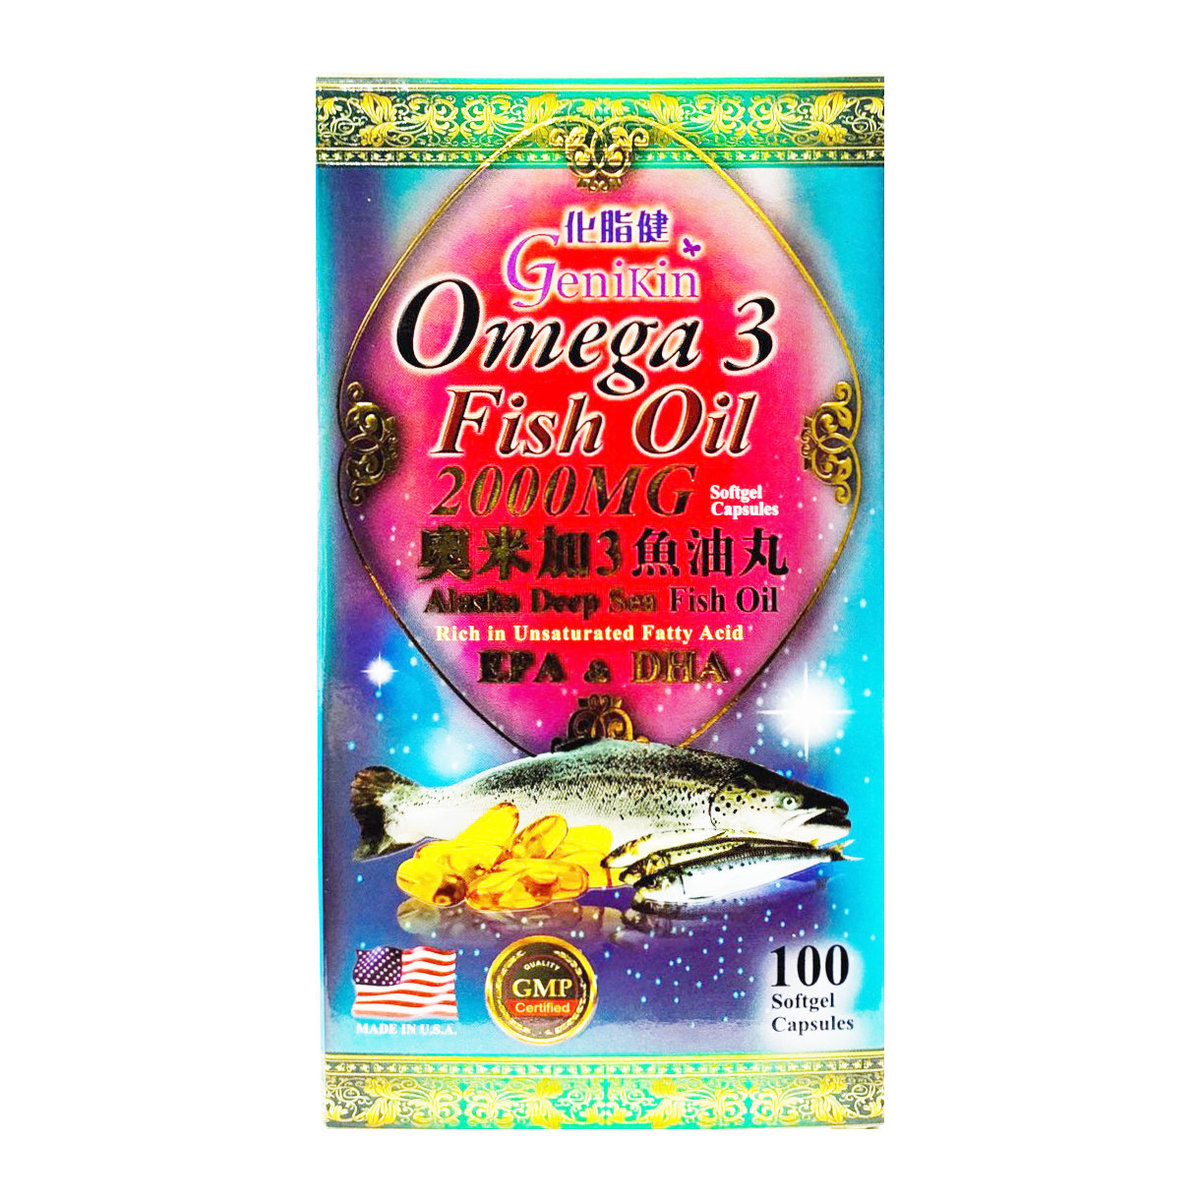 Omega 3 Fish Oil 1000mg 100 capsules (4895181902467)